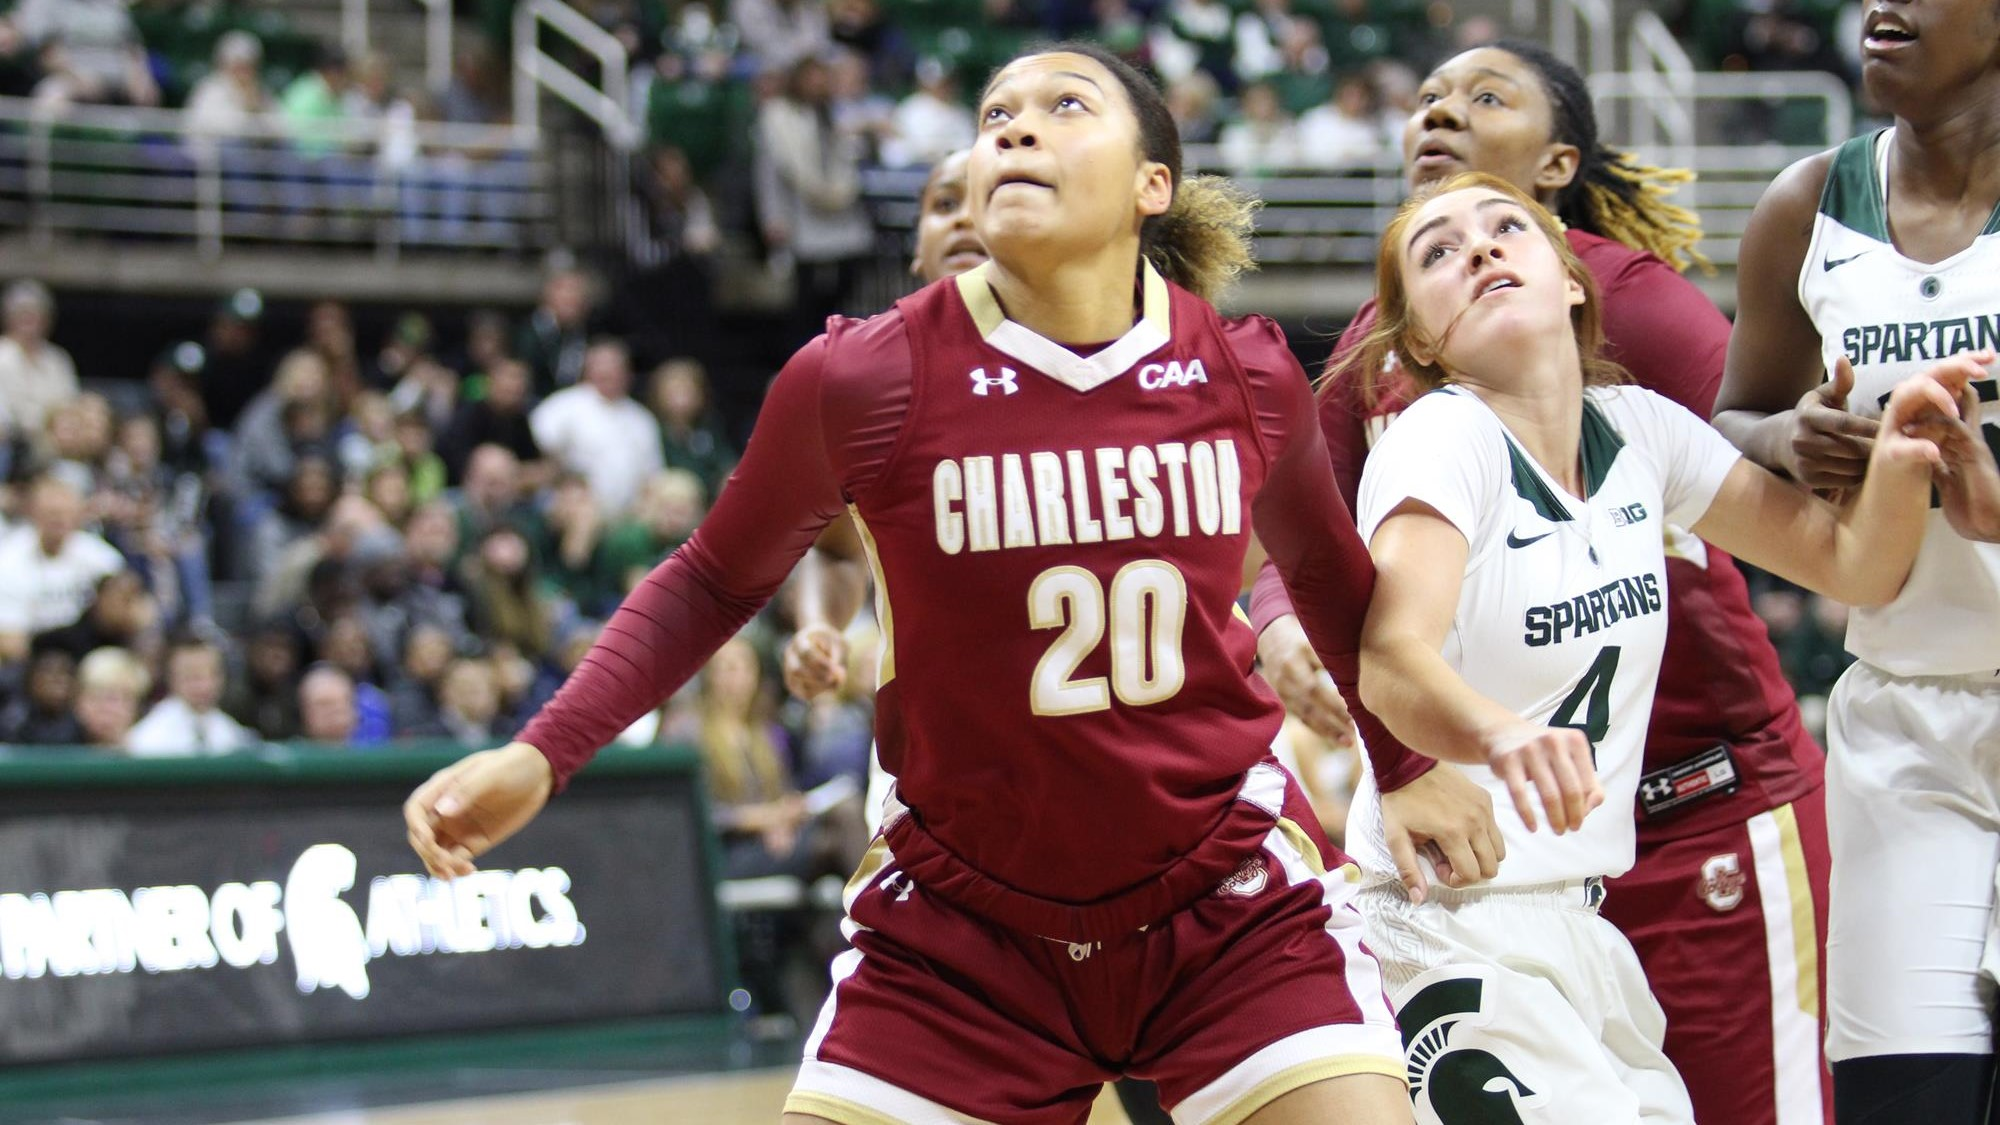 Cougars Jet to Jacksonville for Showdown with UNF - College of Charleston